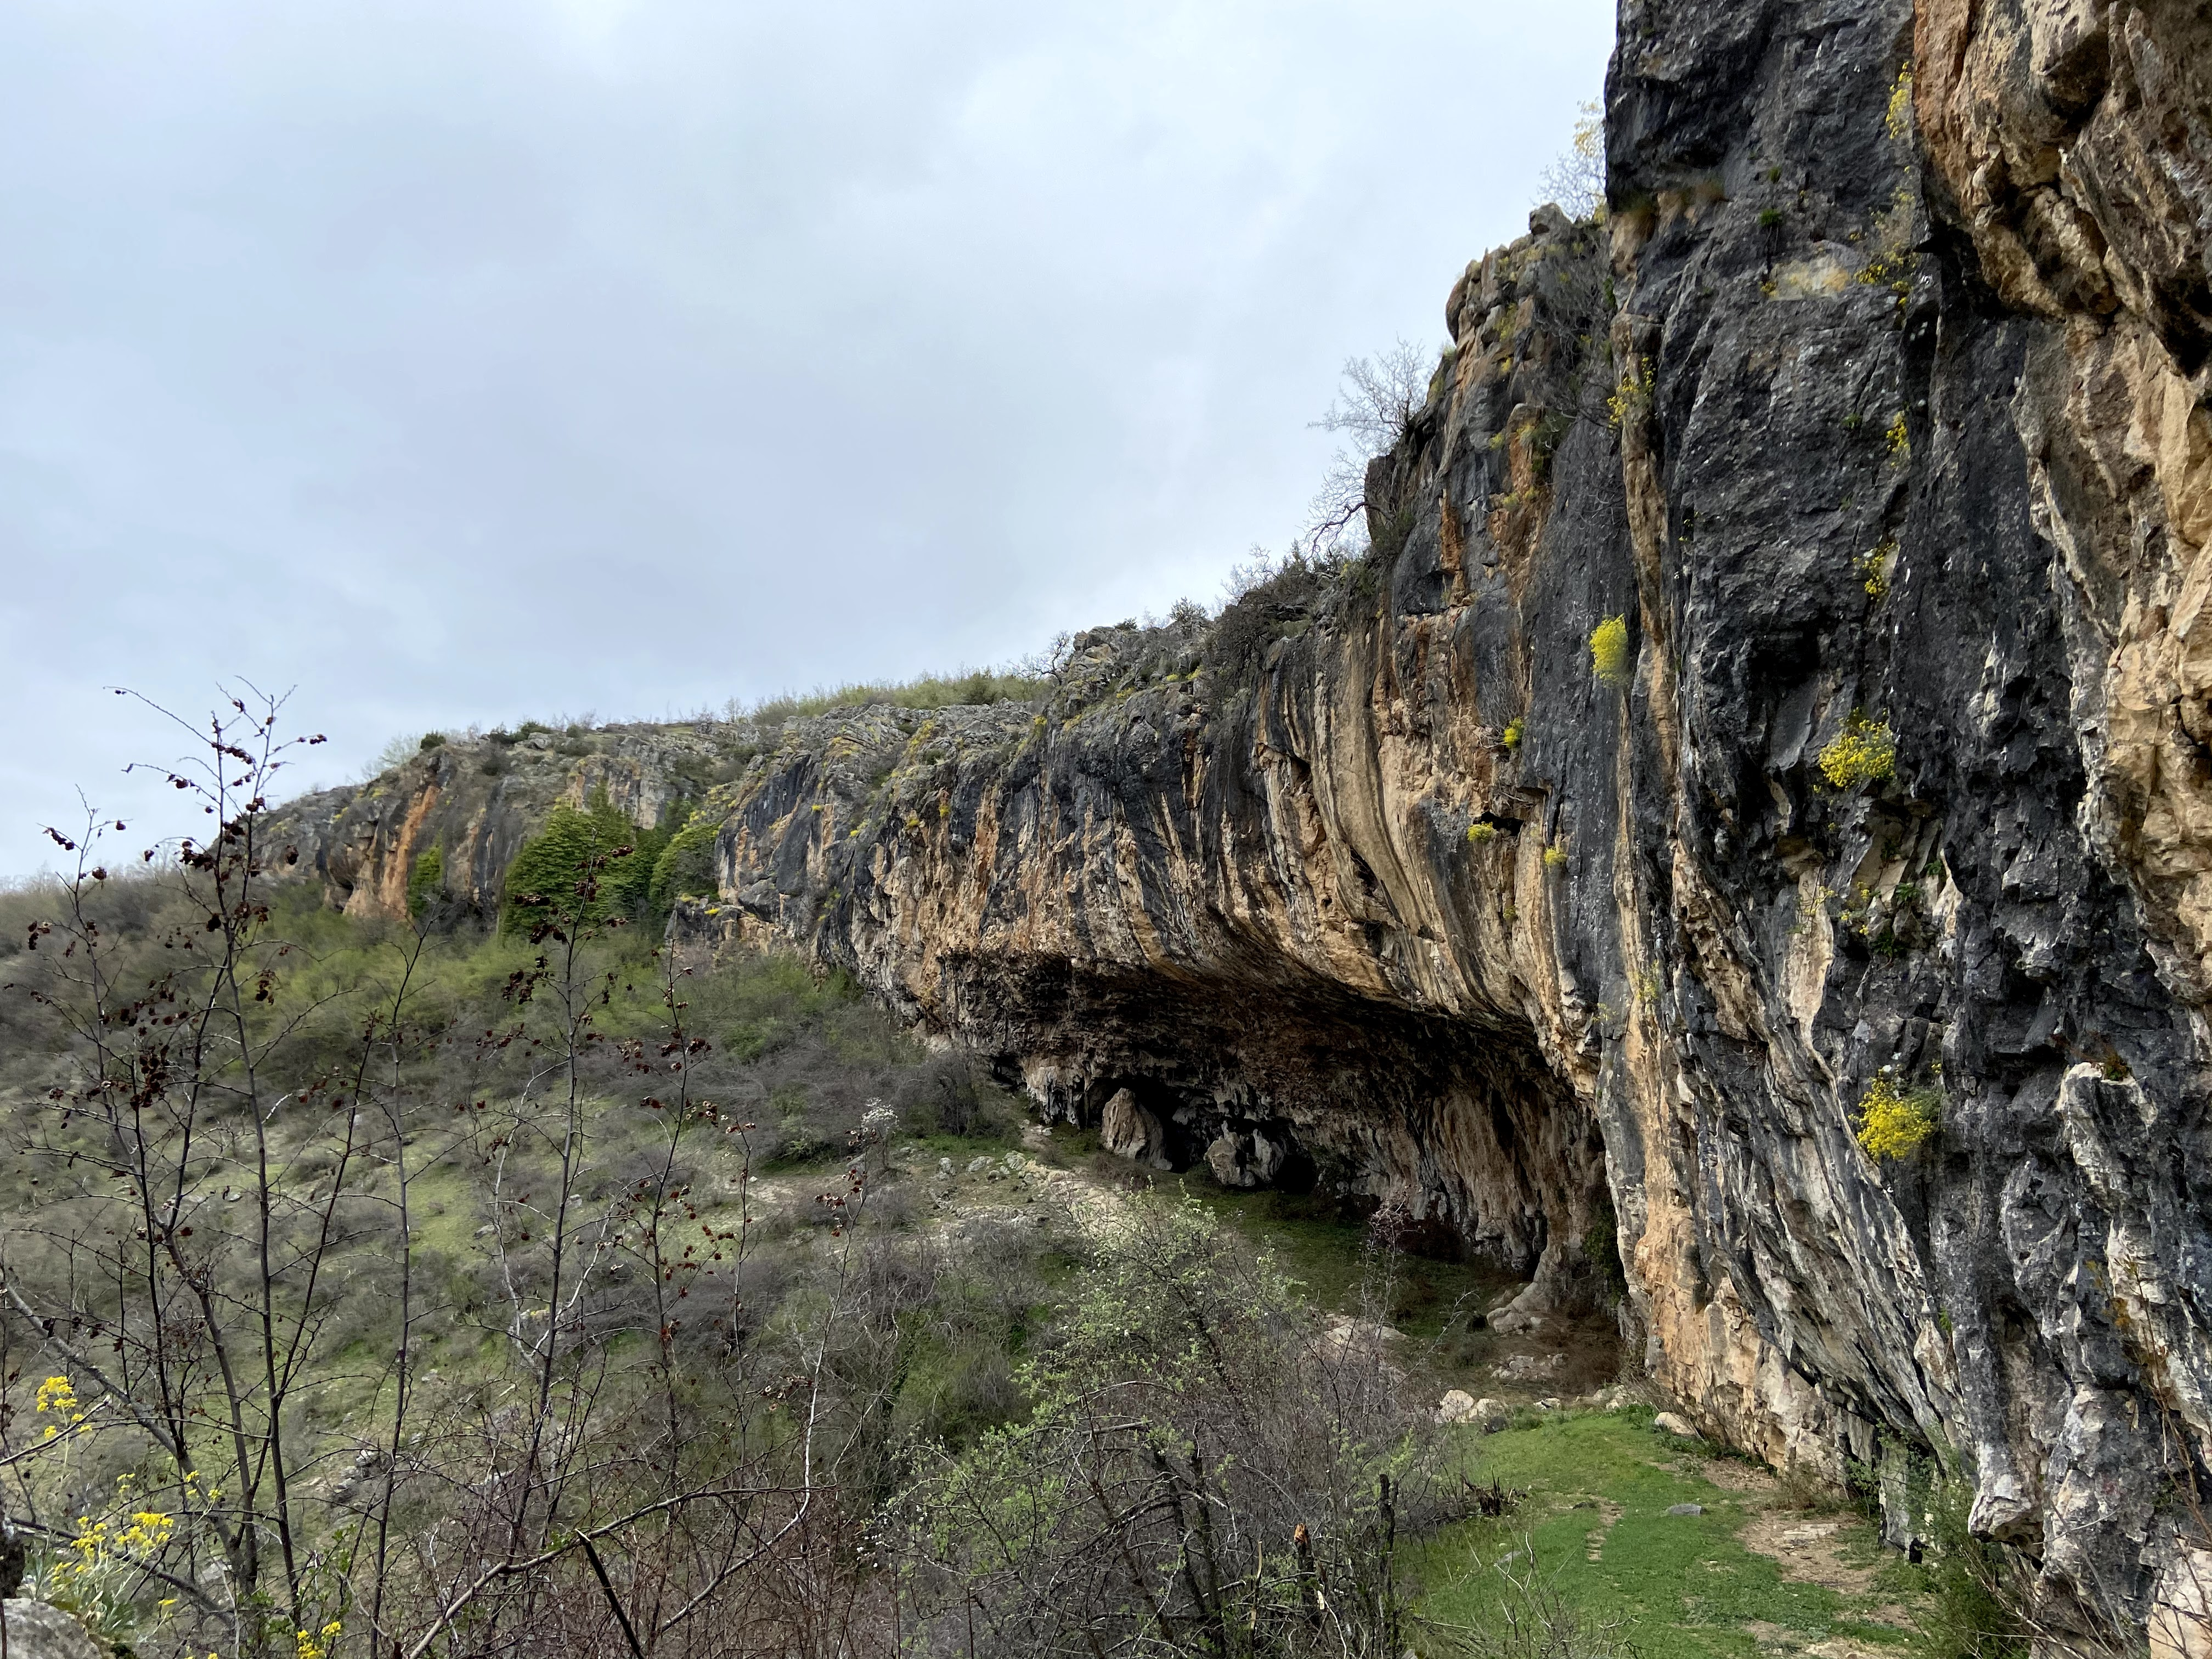 Overhanging cliff of Kadina. There are big strips down the cliff face. In the middle is a large cave with a steep roof that evens out to a short headwall.